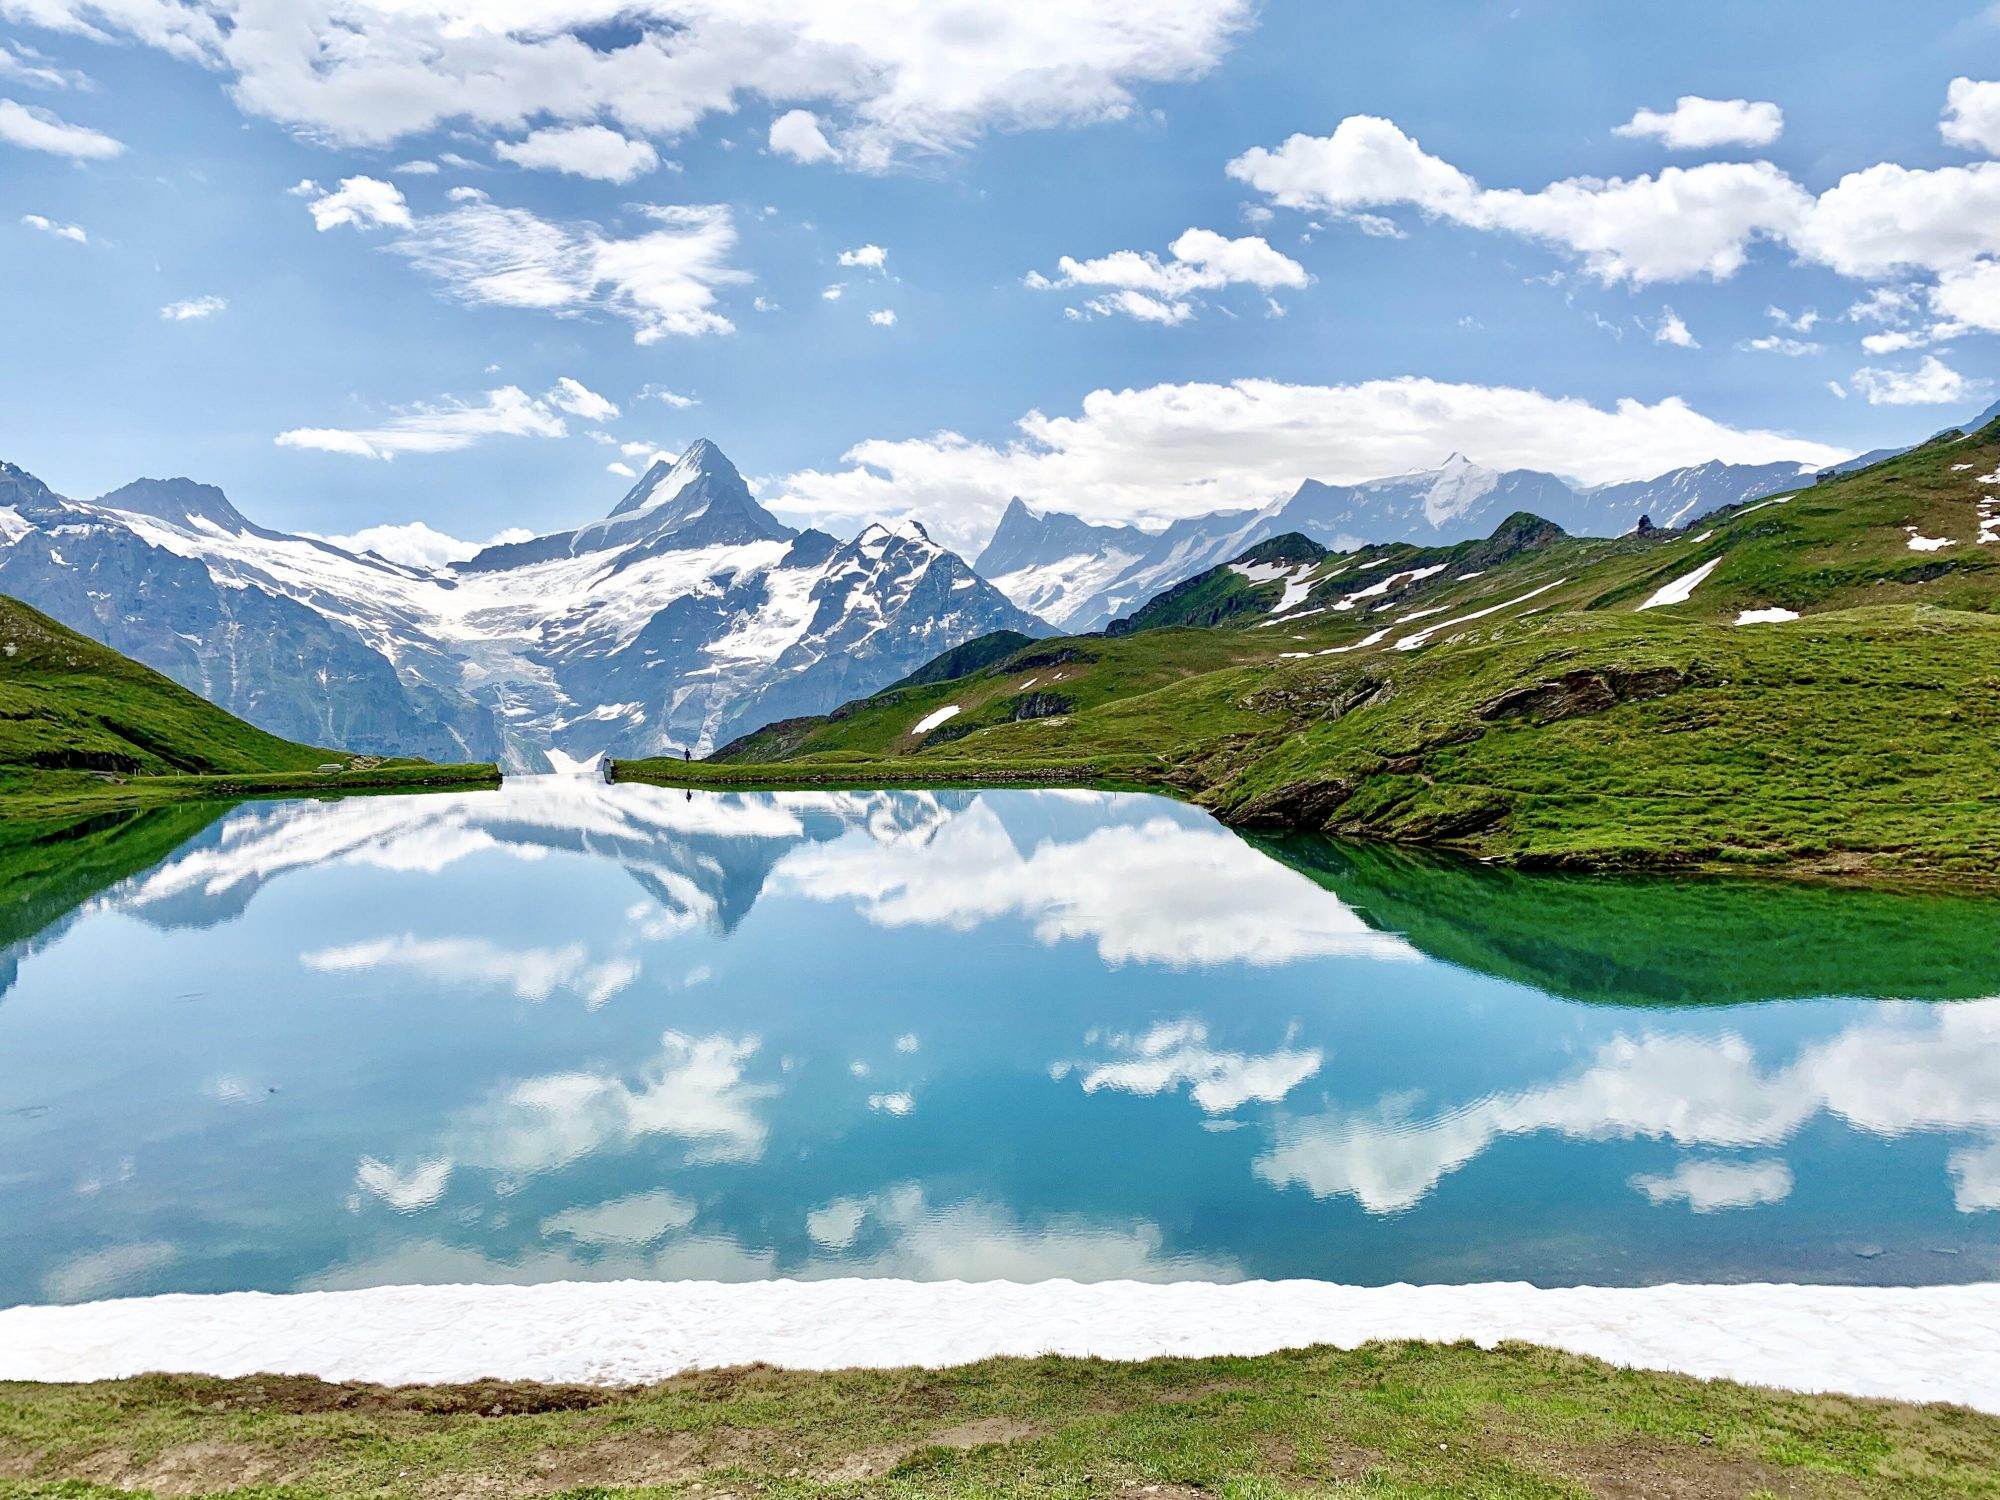 Bachalpsee – Hike from Grindelwald First to the prettiest Swiss mountain lake